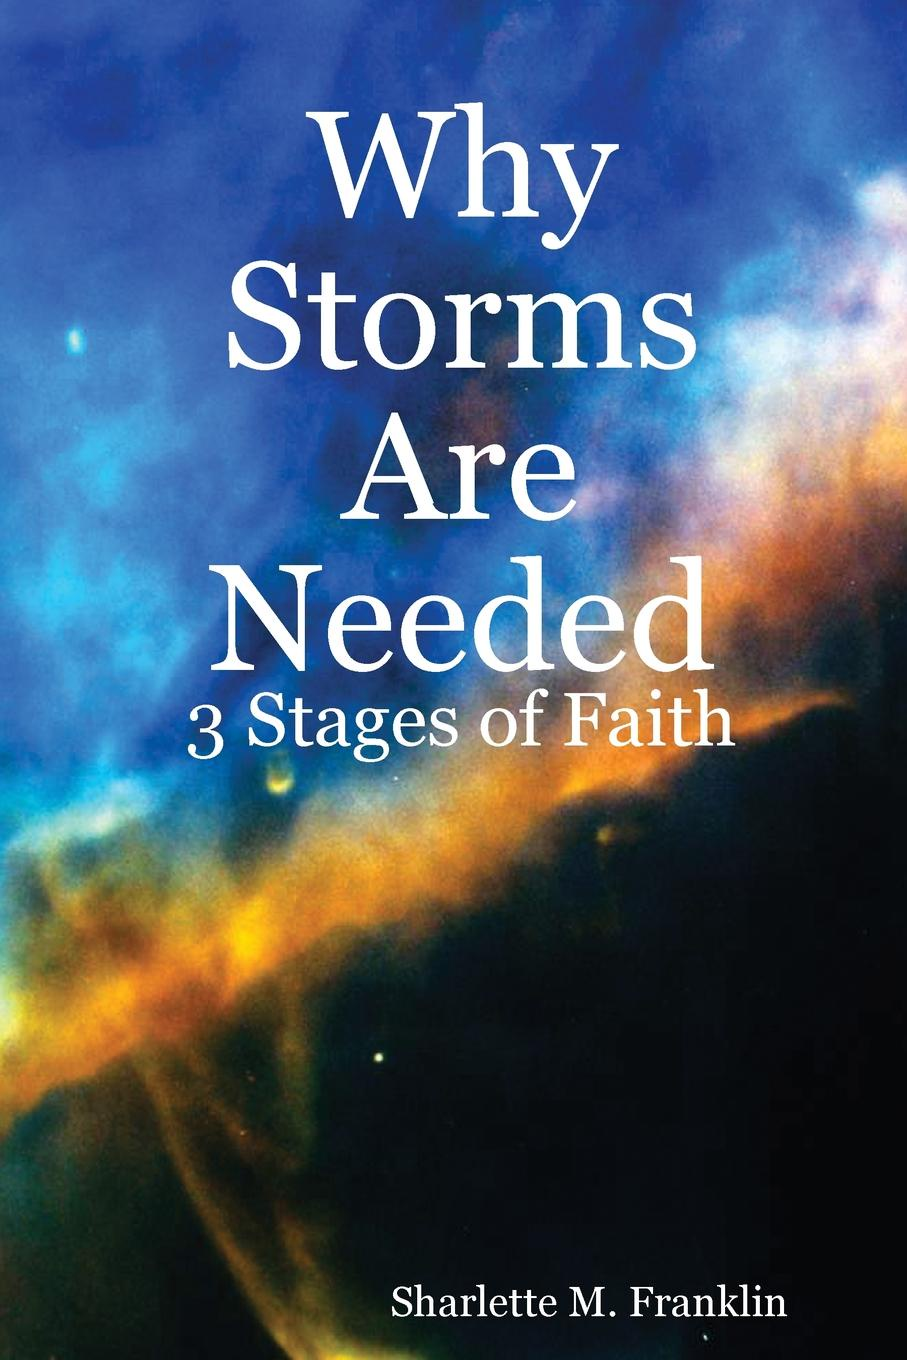 Фото - Sharlette Franklin Why Storms Are Needed amity shlaes it s not as bad as you think why capitalism trumps fear and the economy will thrive